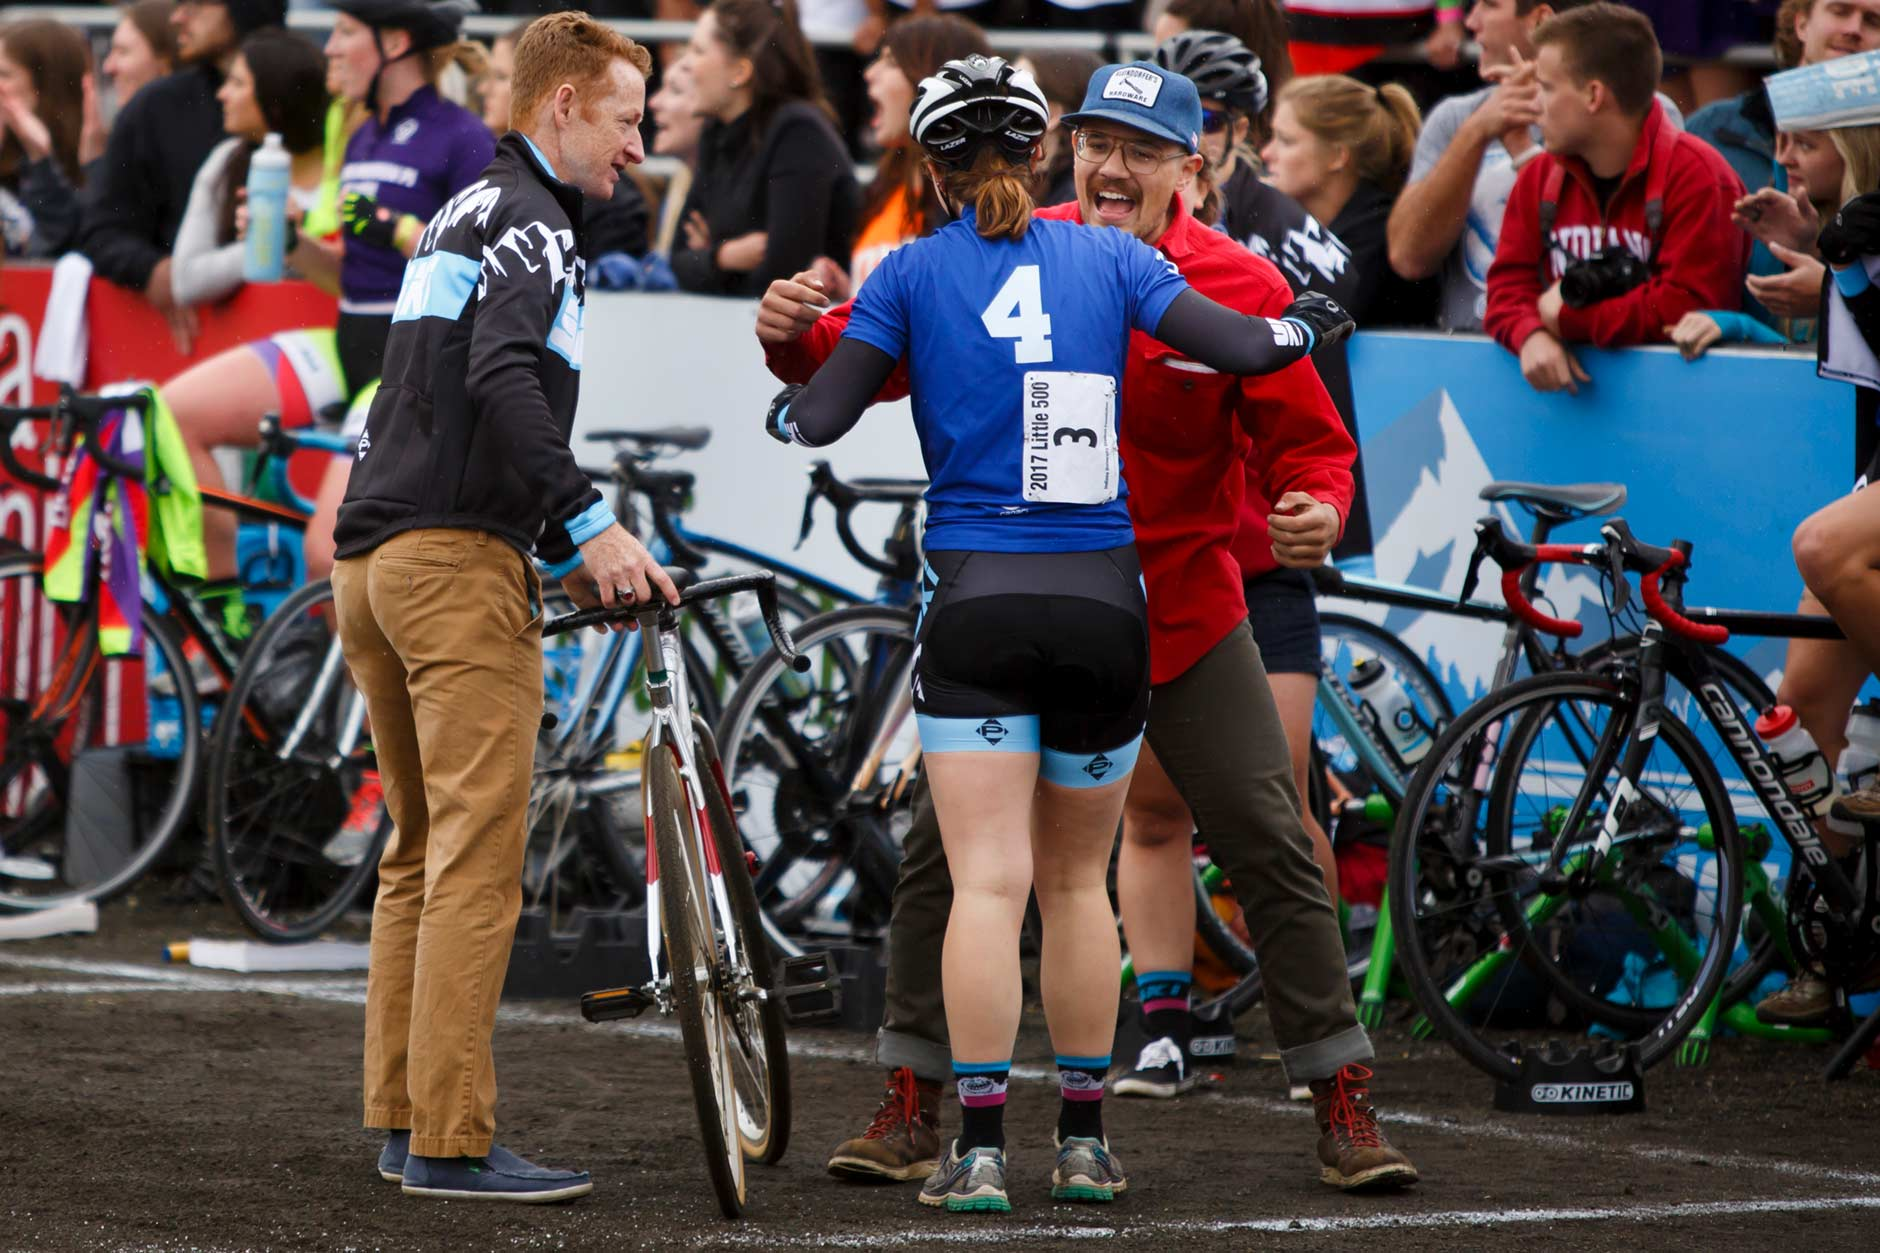 SKI mechanic Sam Harbison, right, hugs rider Ivy Moore (4) as coach Jim Kirkham watches during the Women's Little 500 at Bill Armstrong Stadium on Friday, April 21, 2017. (James Brosher/IU Communications)